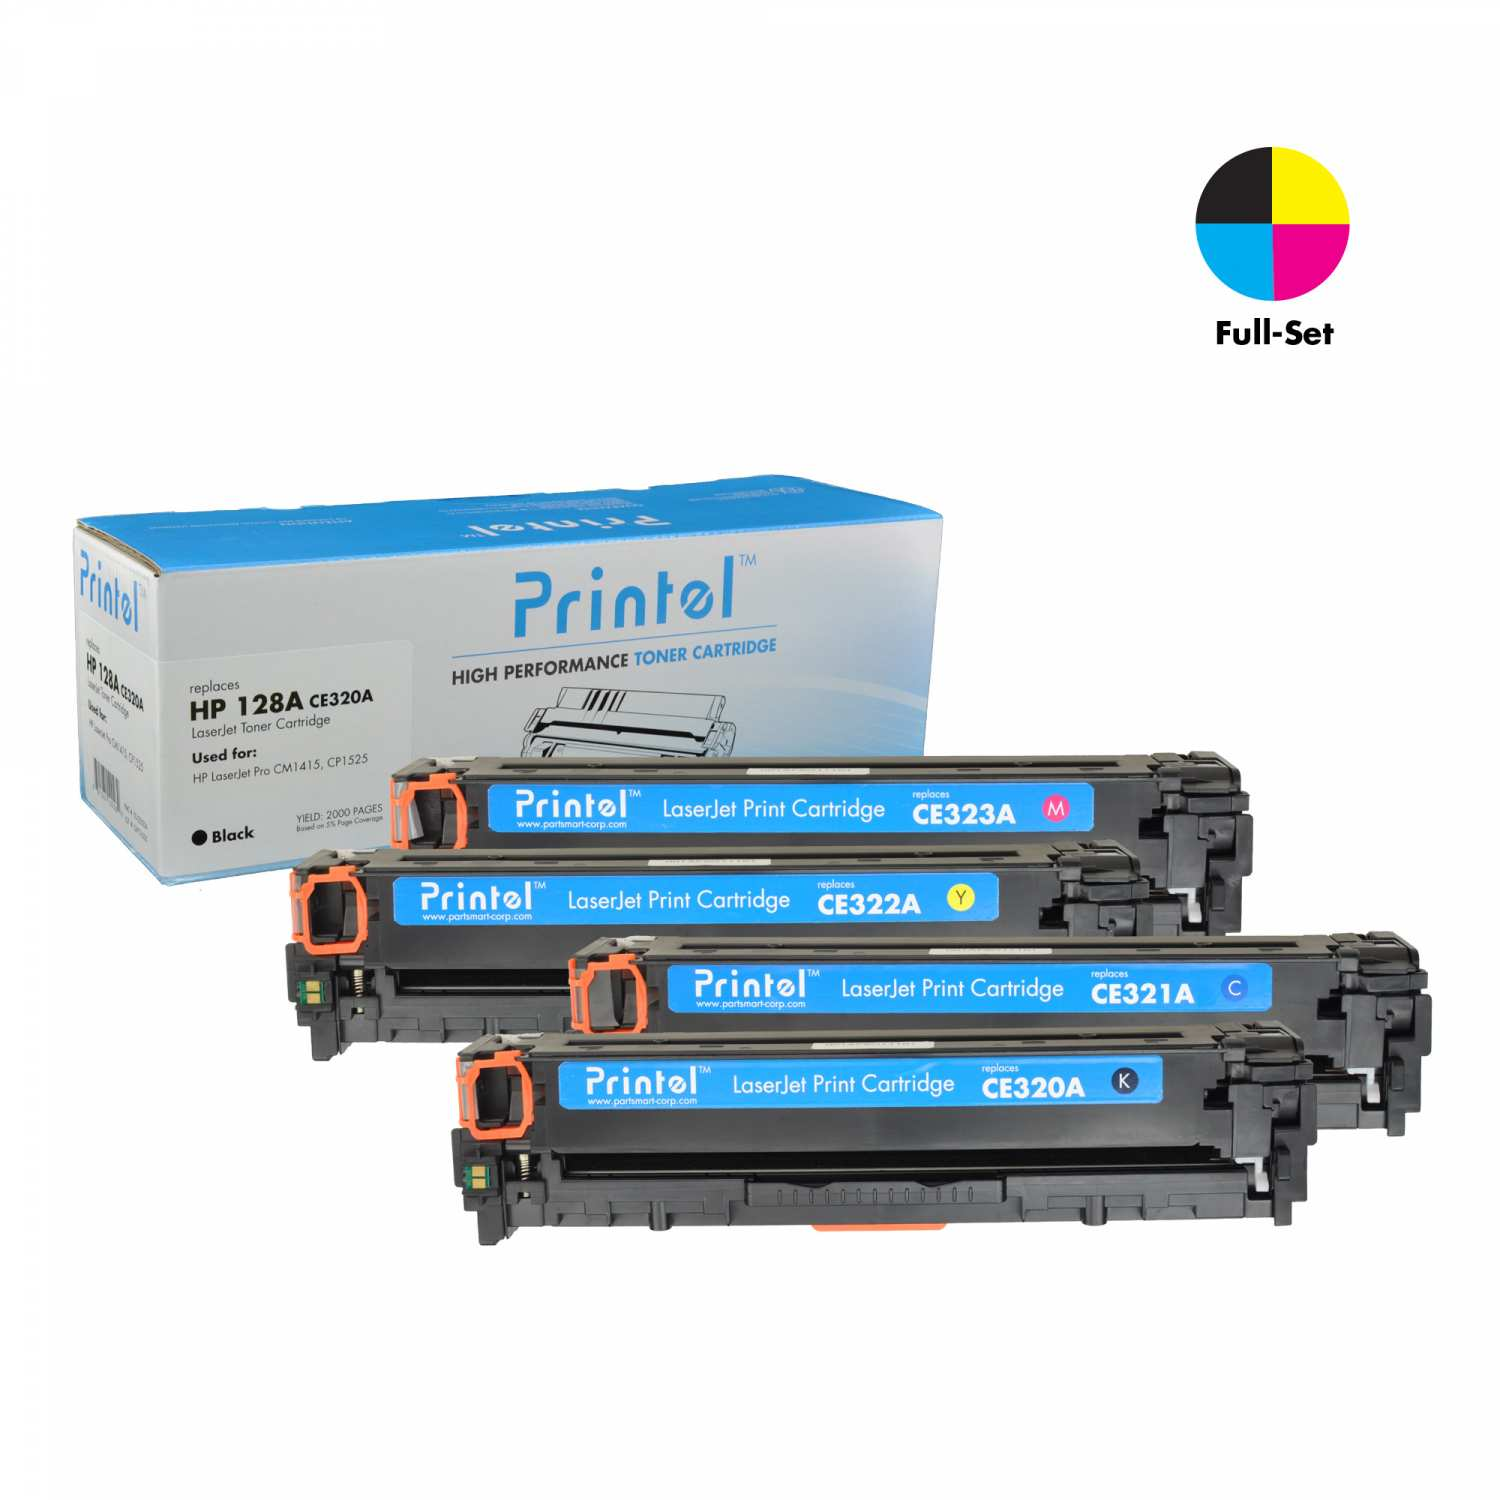 HP 128A, 1 Black CE320A, 1 Cyan CE321A, 1 Magenta CE323A and 1 Yellow CE322A